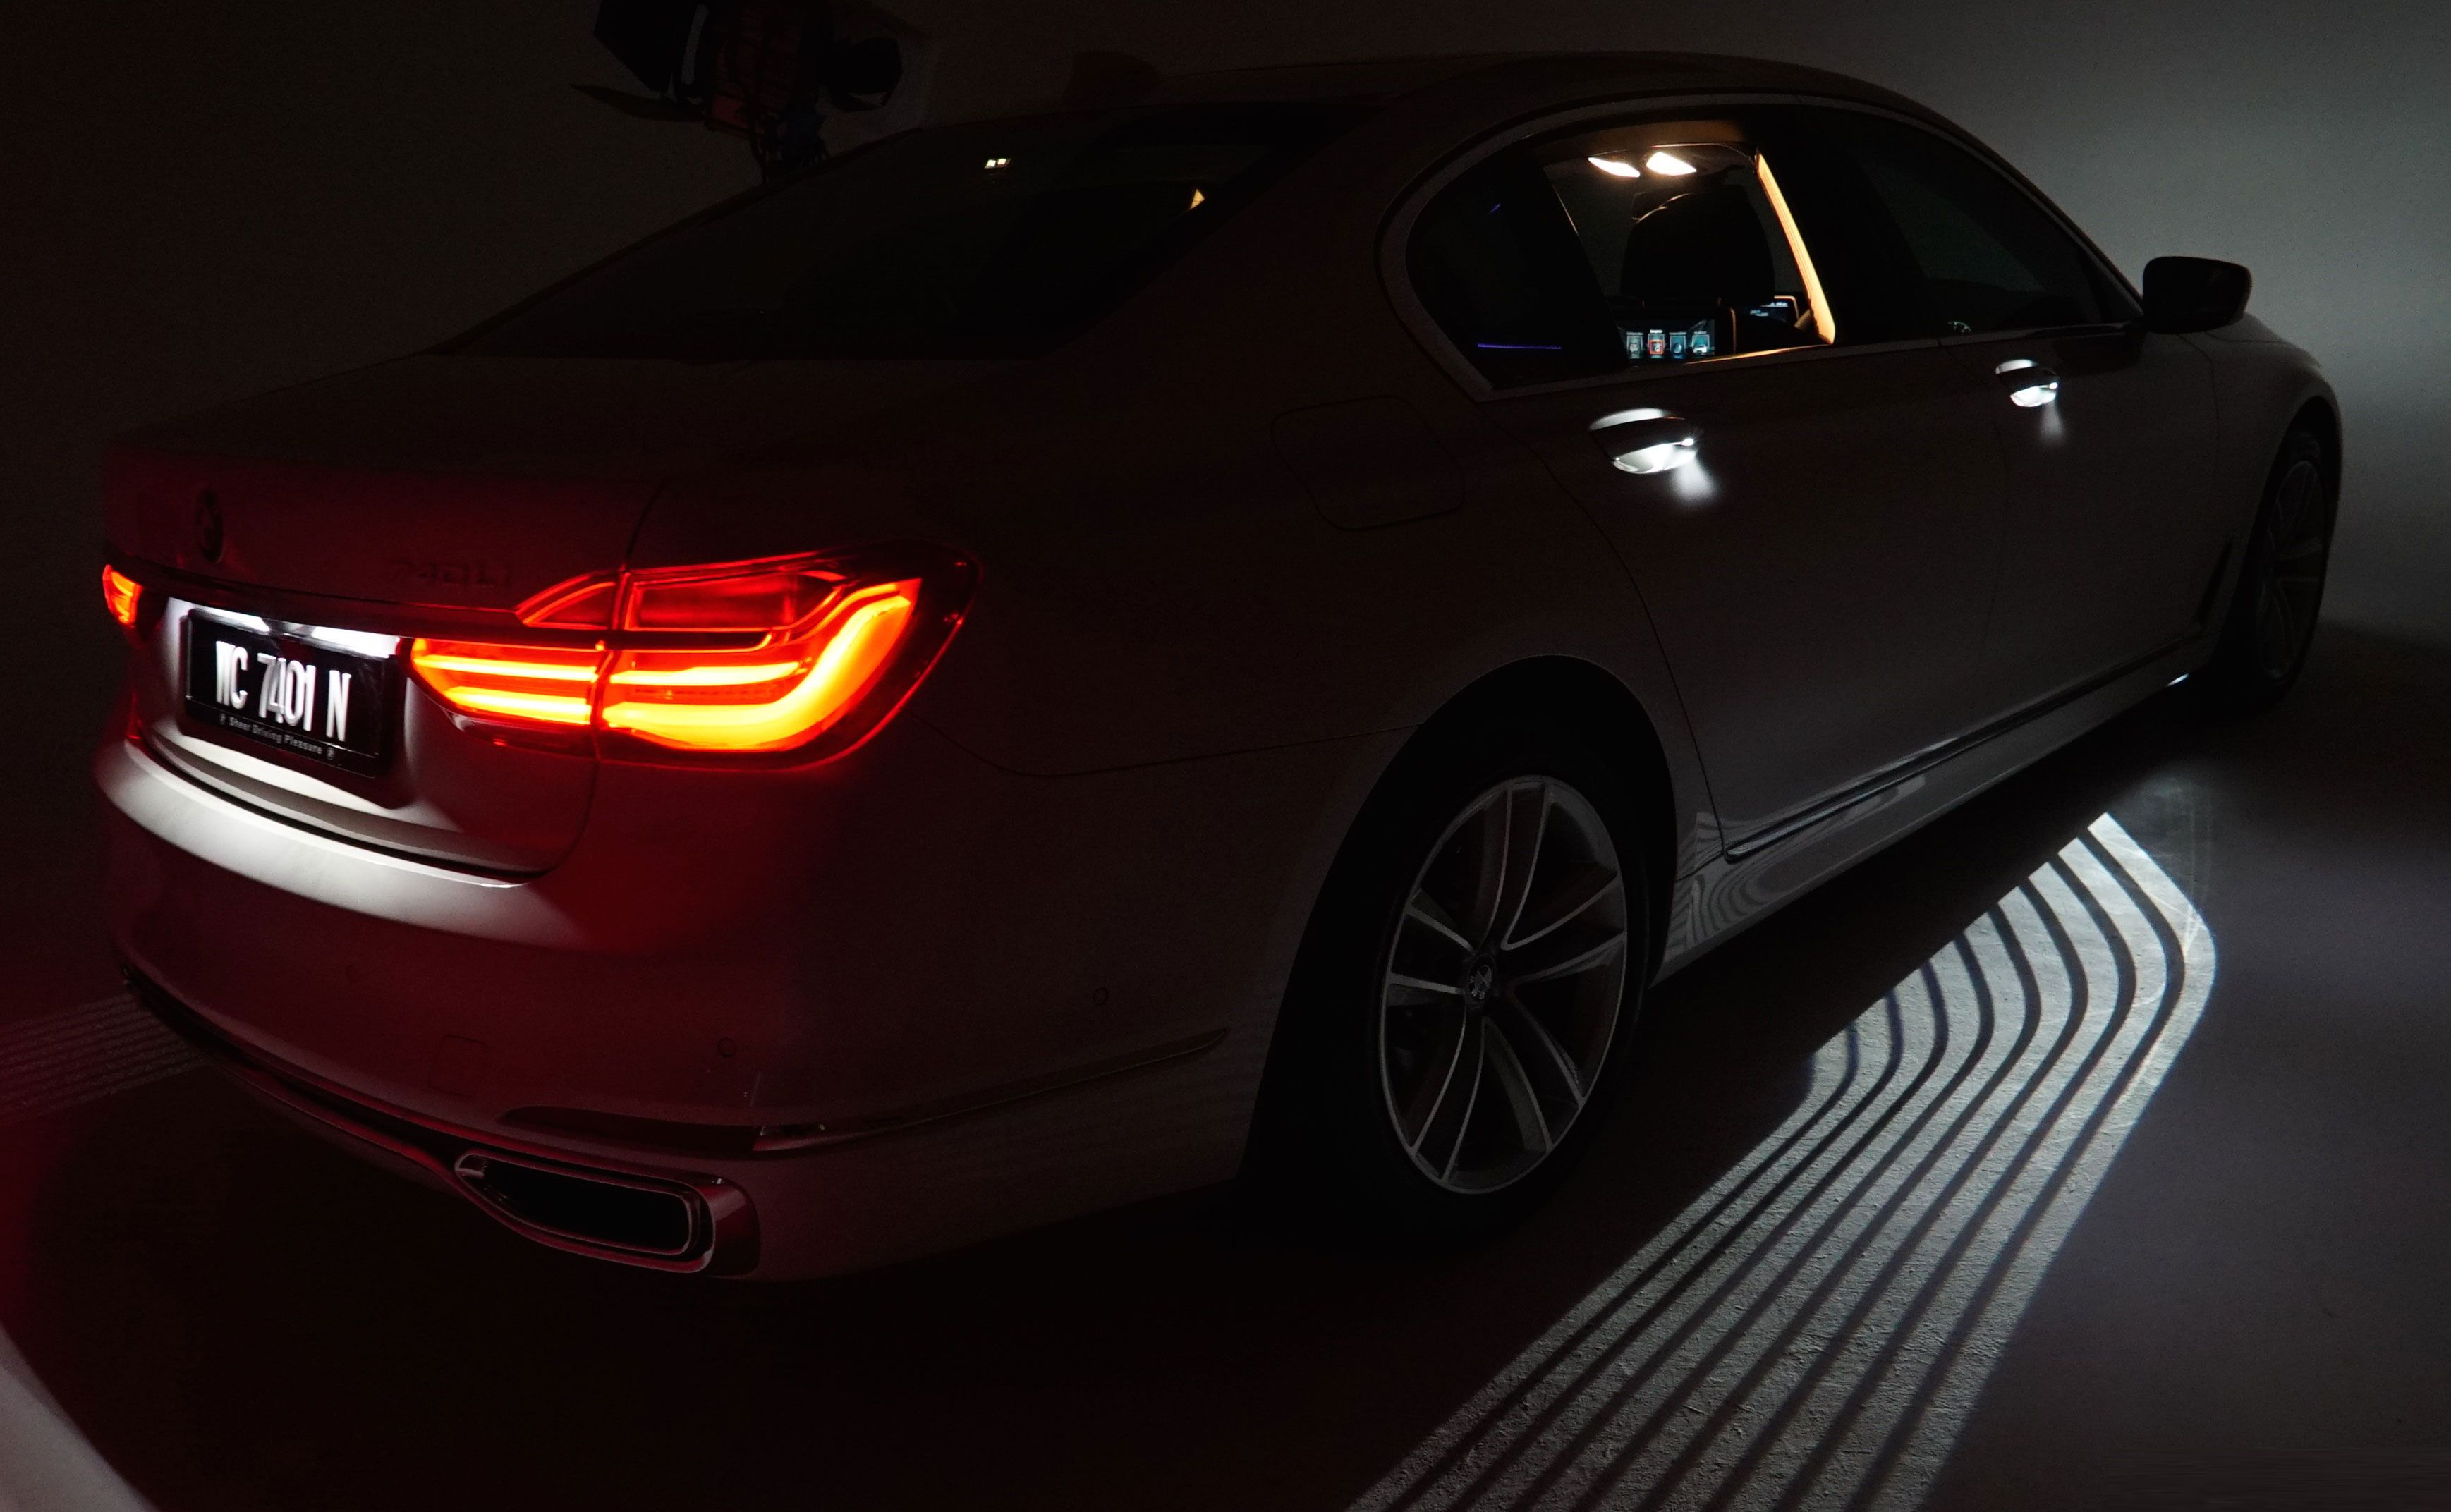 Bmw 7 Series 2016 Welcome Light Carpet It Took 3 Years To Get This Into Production Bmw 7series Exteriorlights Carlamps In Bmw 7 Series Bmw Bmw Alpina